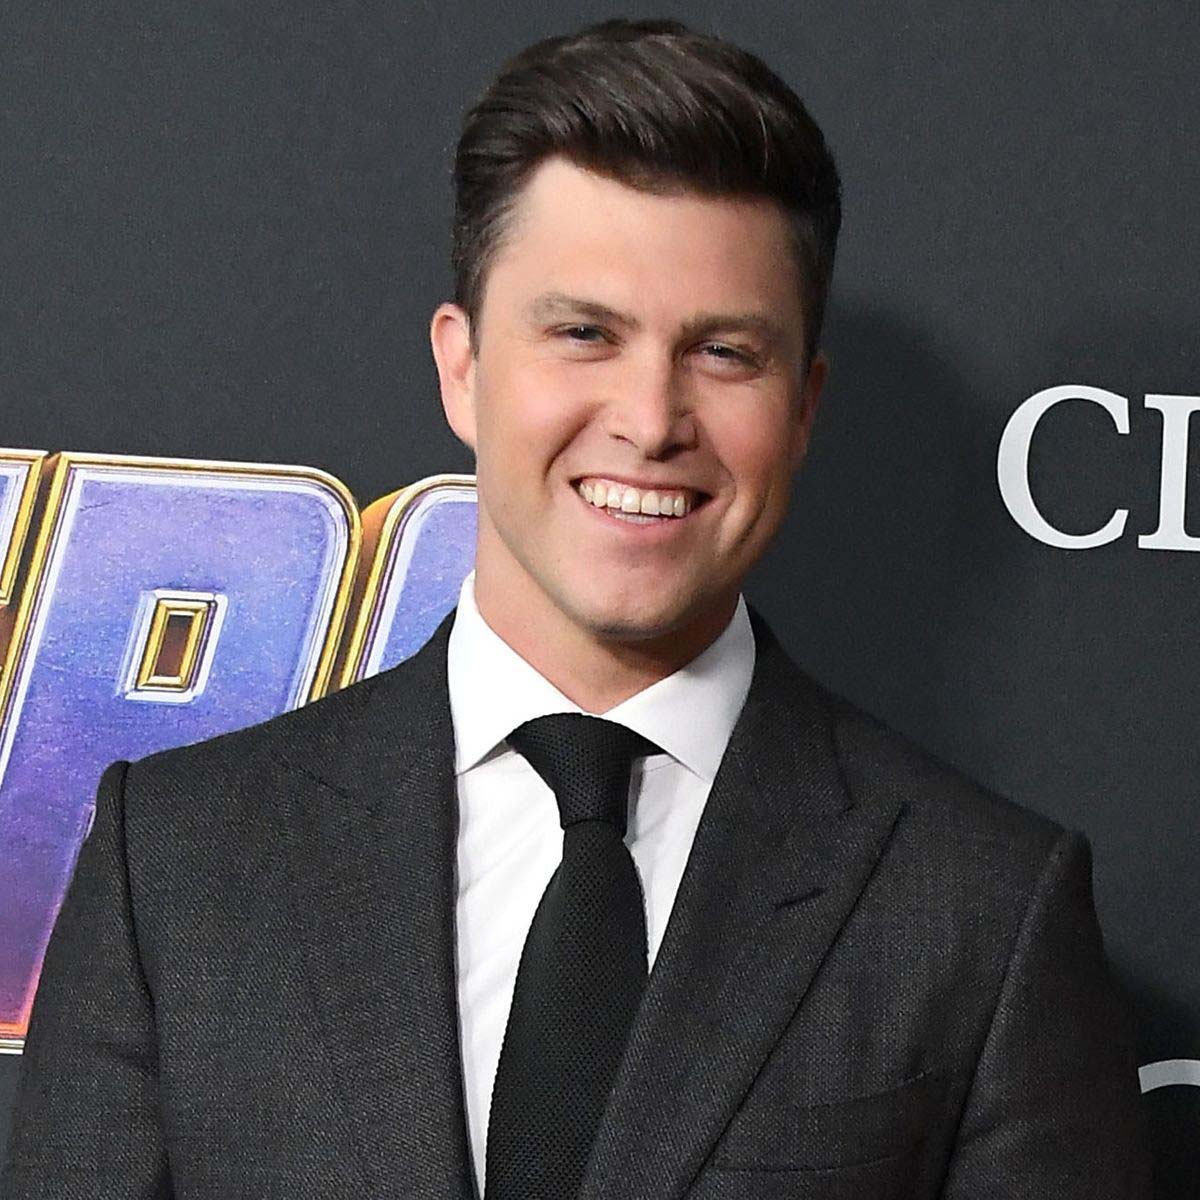 Colin Jost Biography Career Net Worth Age Scarlett Johansson Height